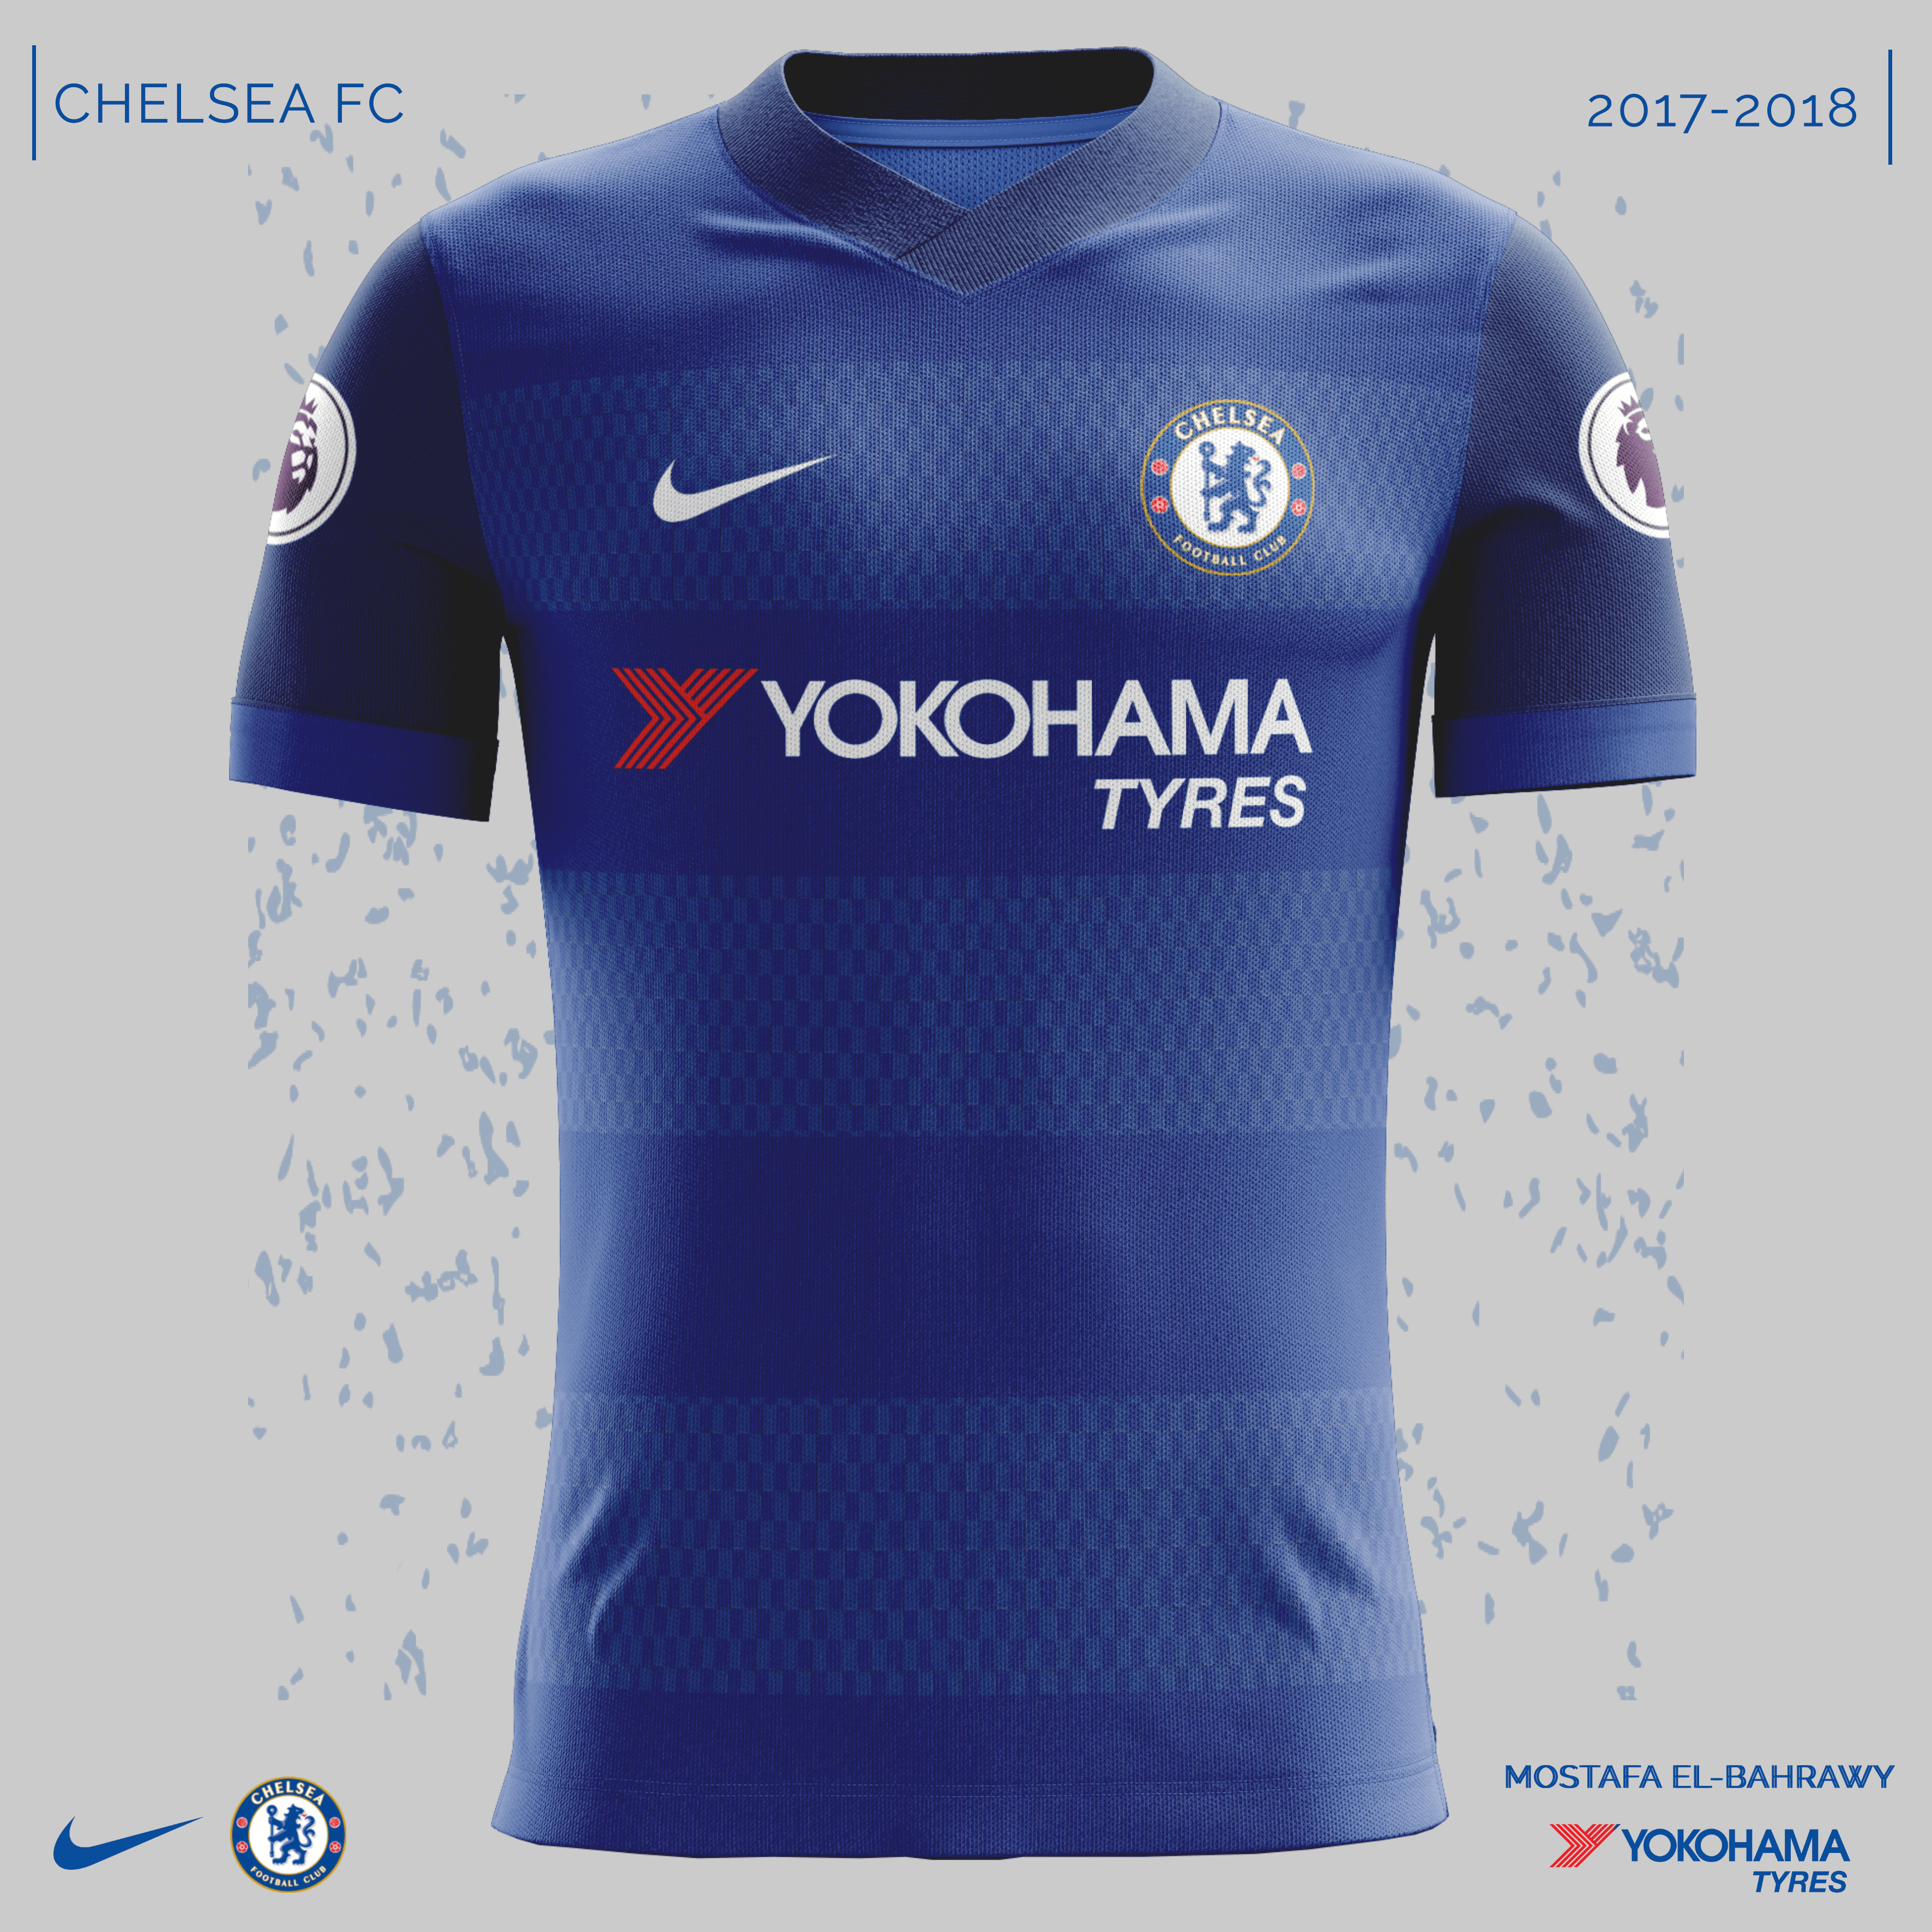 68151c23904 Chelsea had agreed a new deal with Nike so these are my Fantasy Kits for  2017-2018 kits .